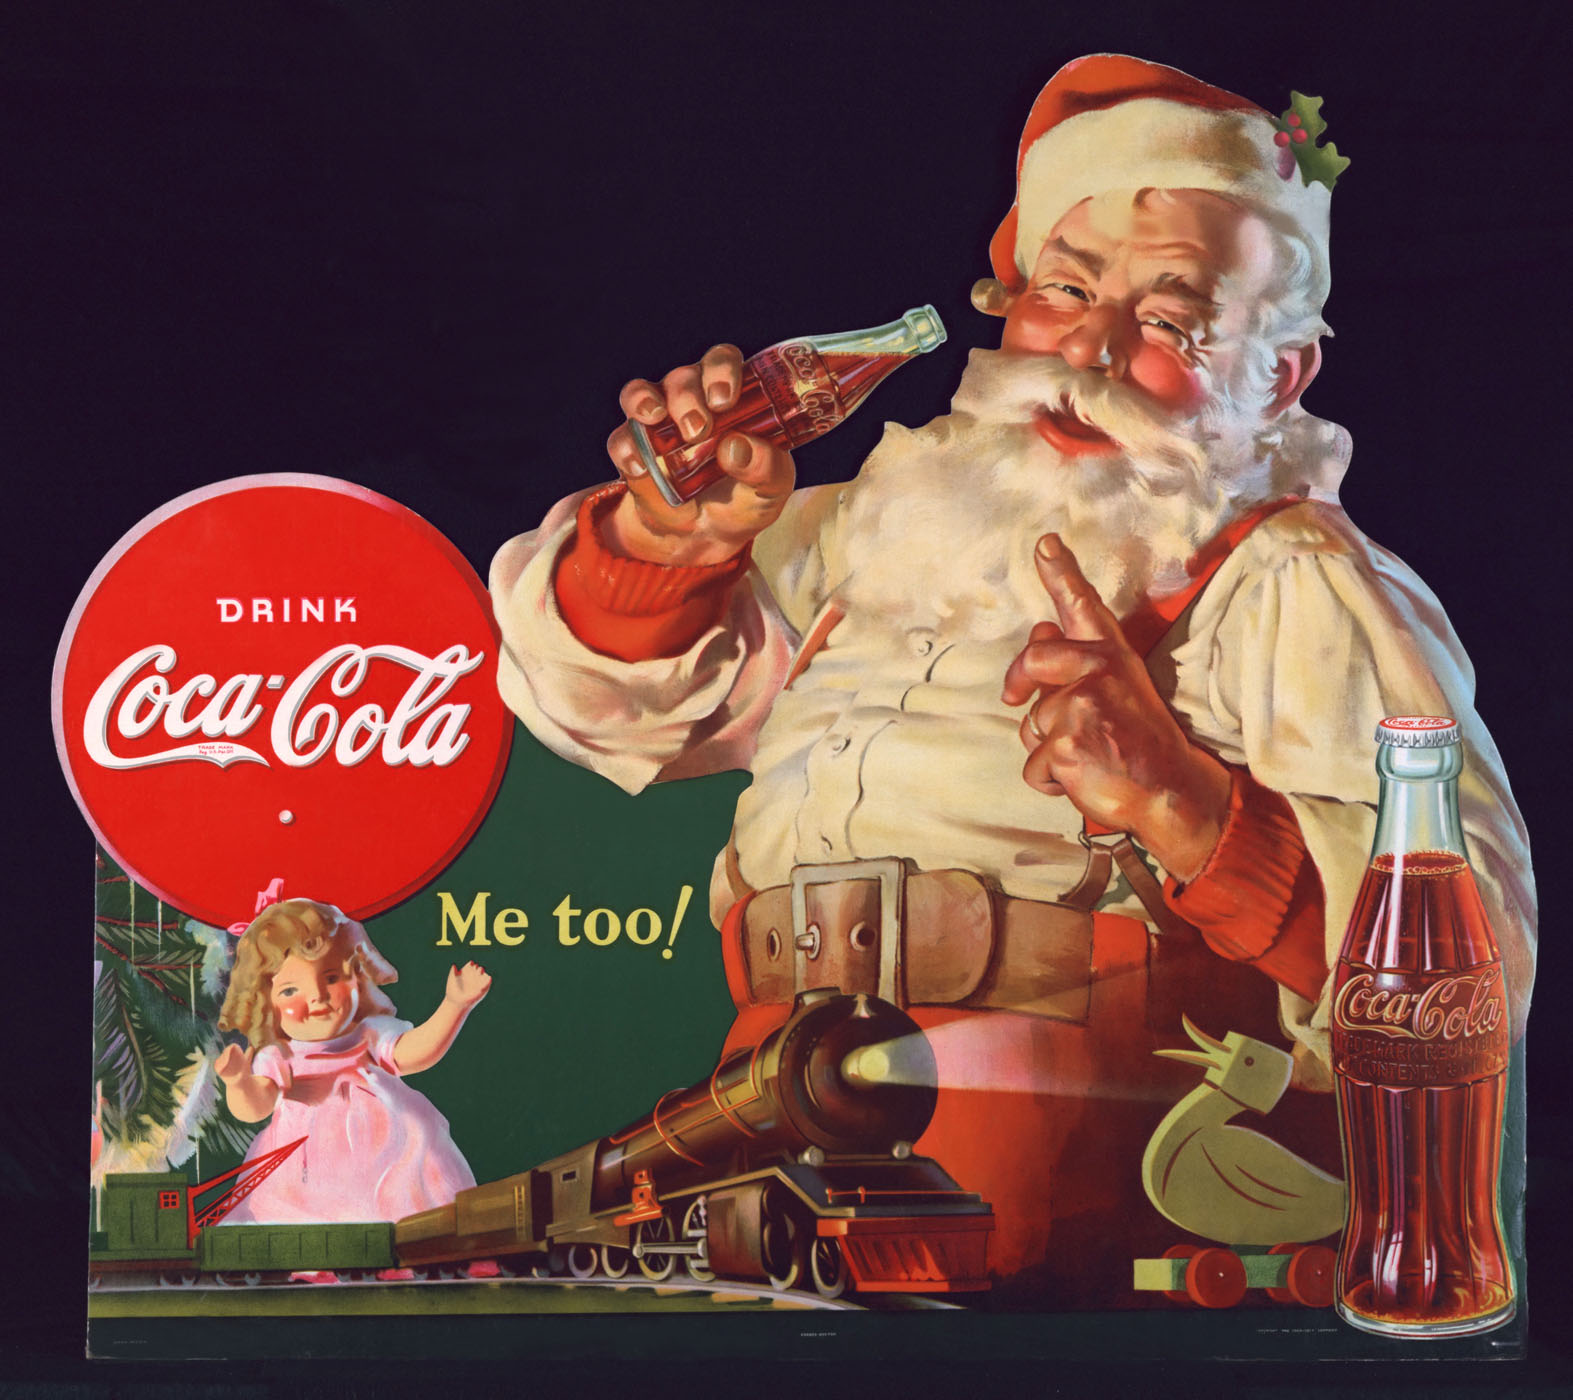 example of effective teamwork during the coca cola campaign